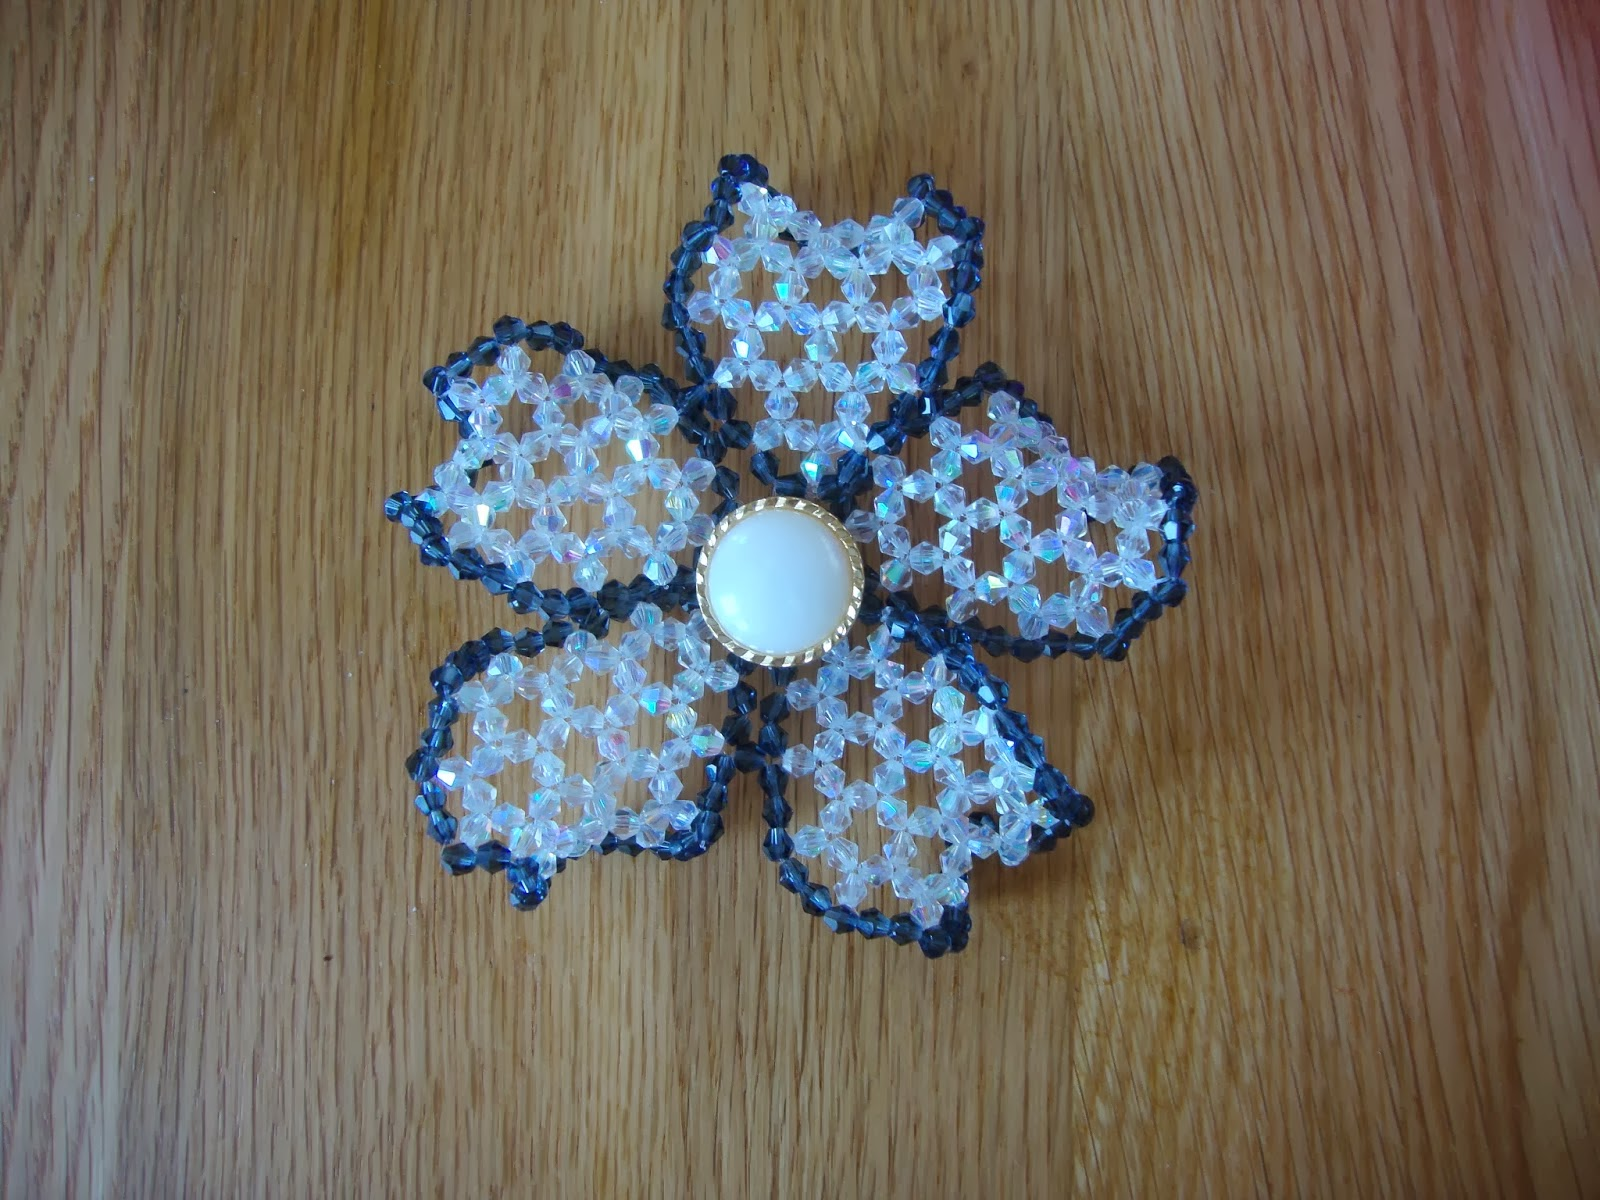 http://strawberrybox-serenie.blogspot.co.uk/2014/03/beaded-flower-brooch.html